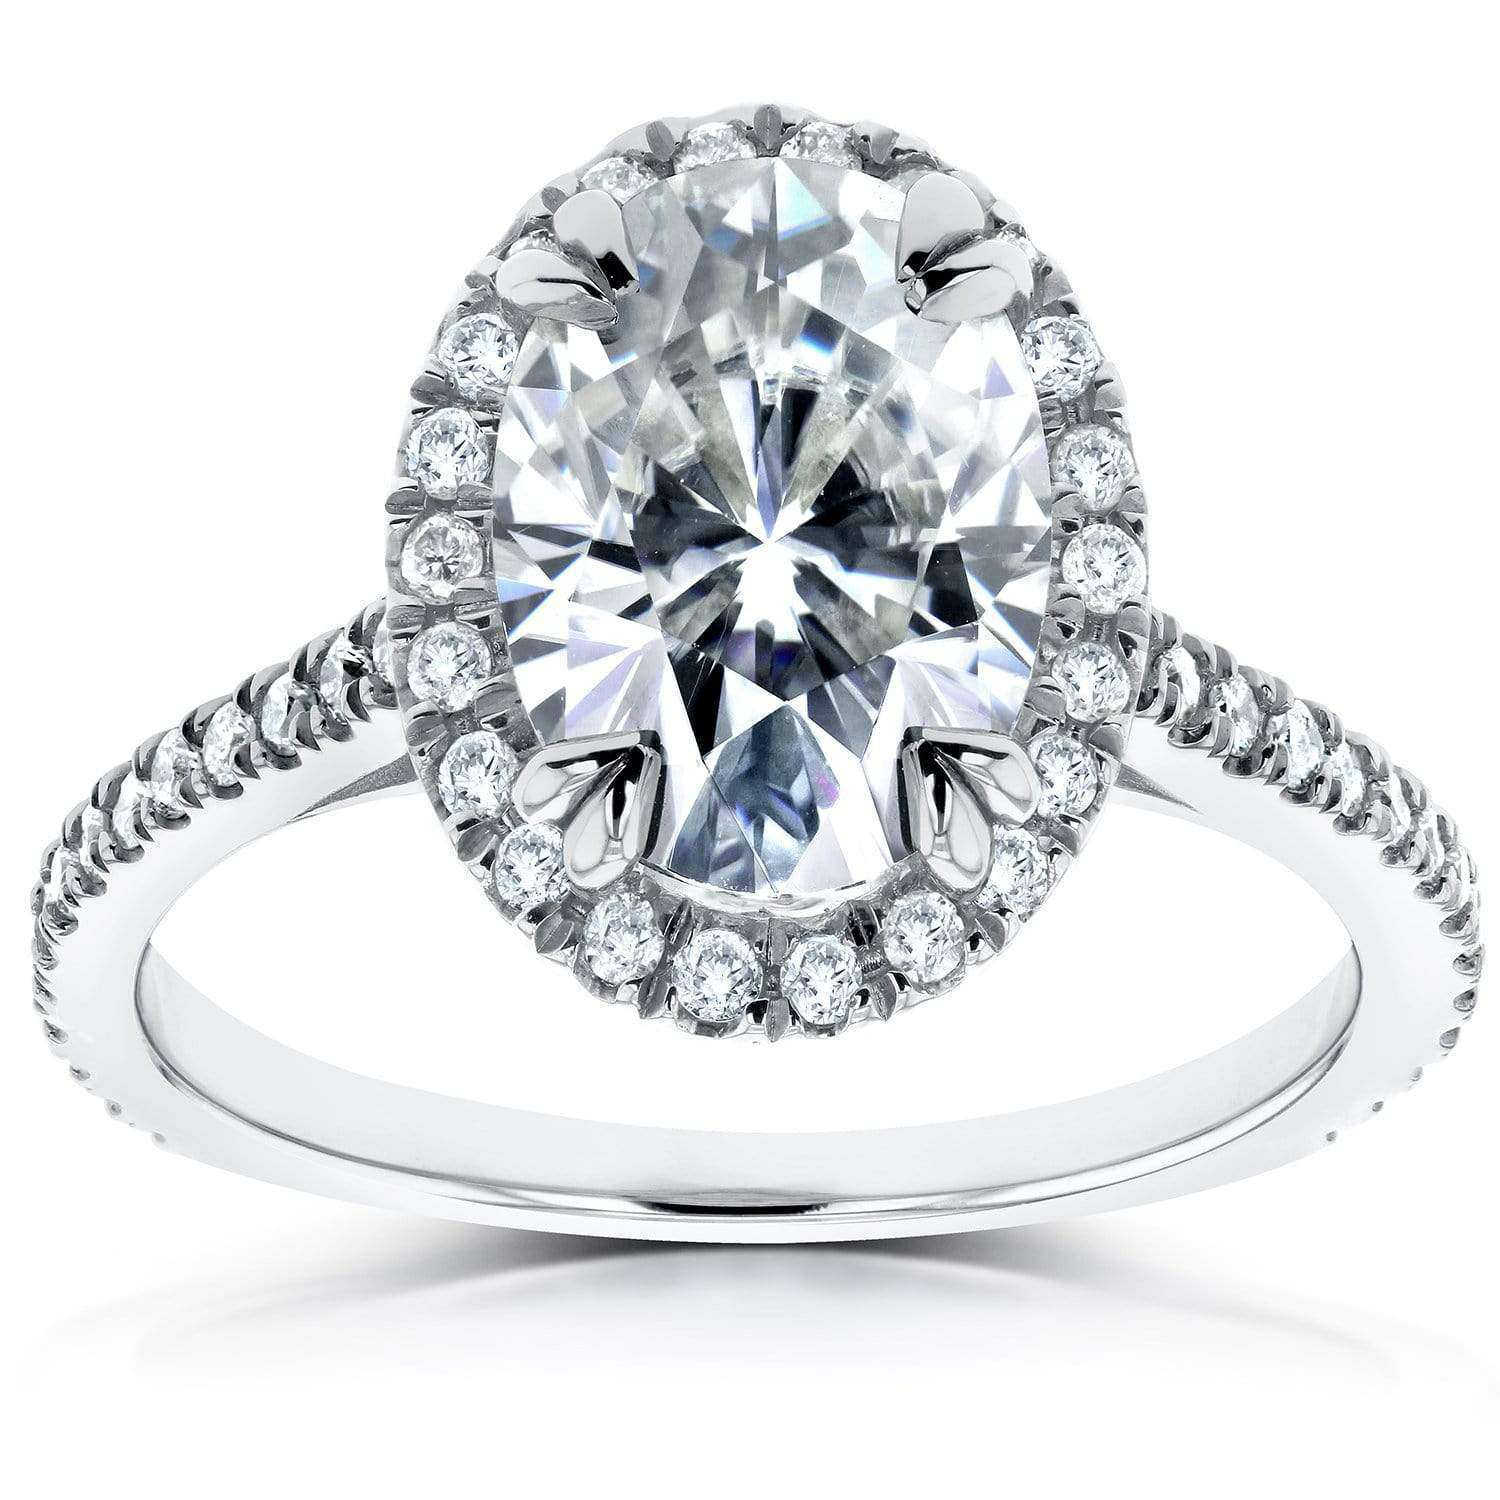 Engagement Rings Vs Wedding Bands: Oval Moissanite And Lab Grown Diamond Halo Engagement Ring